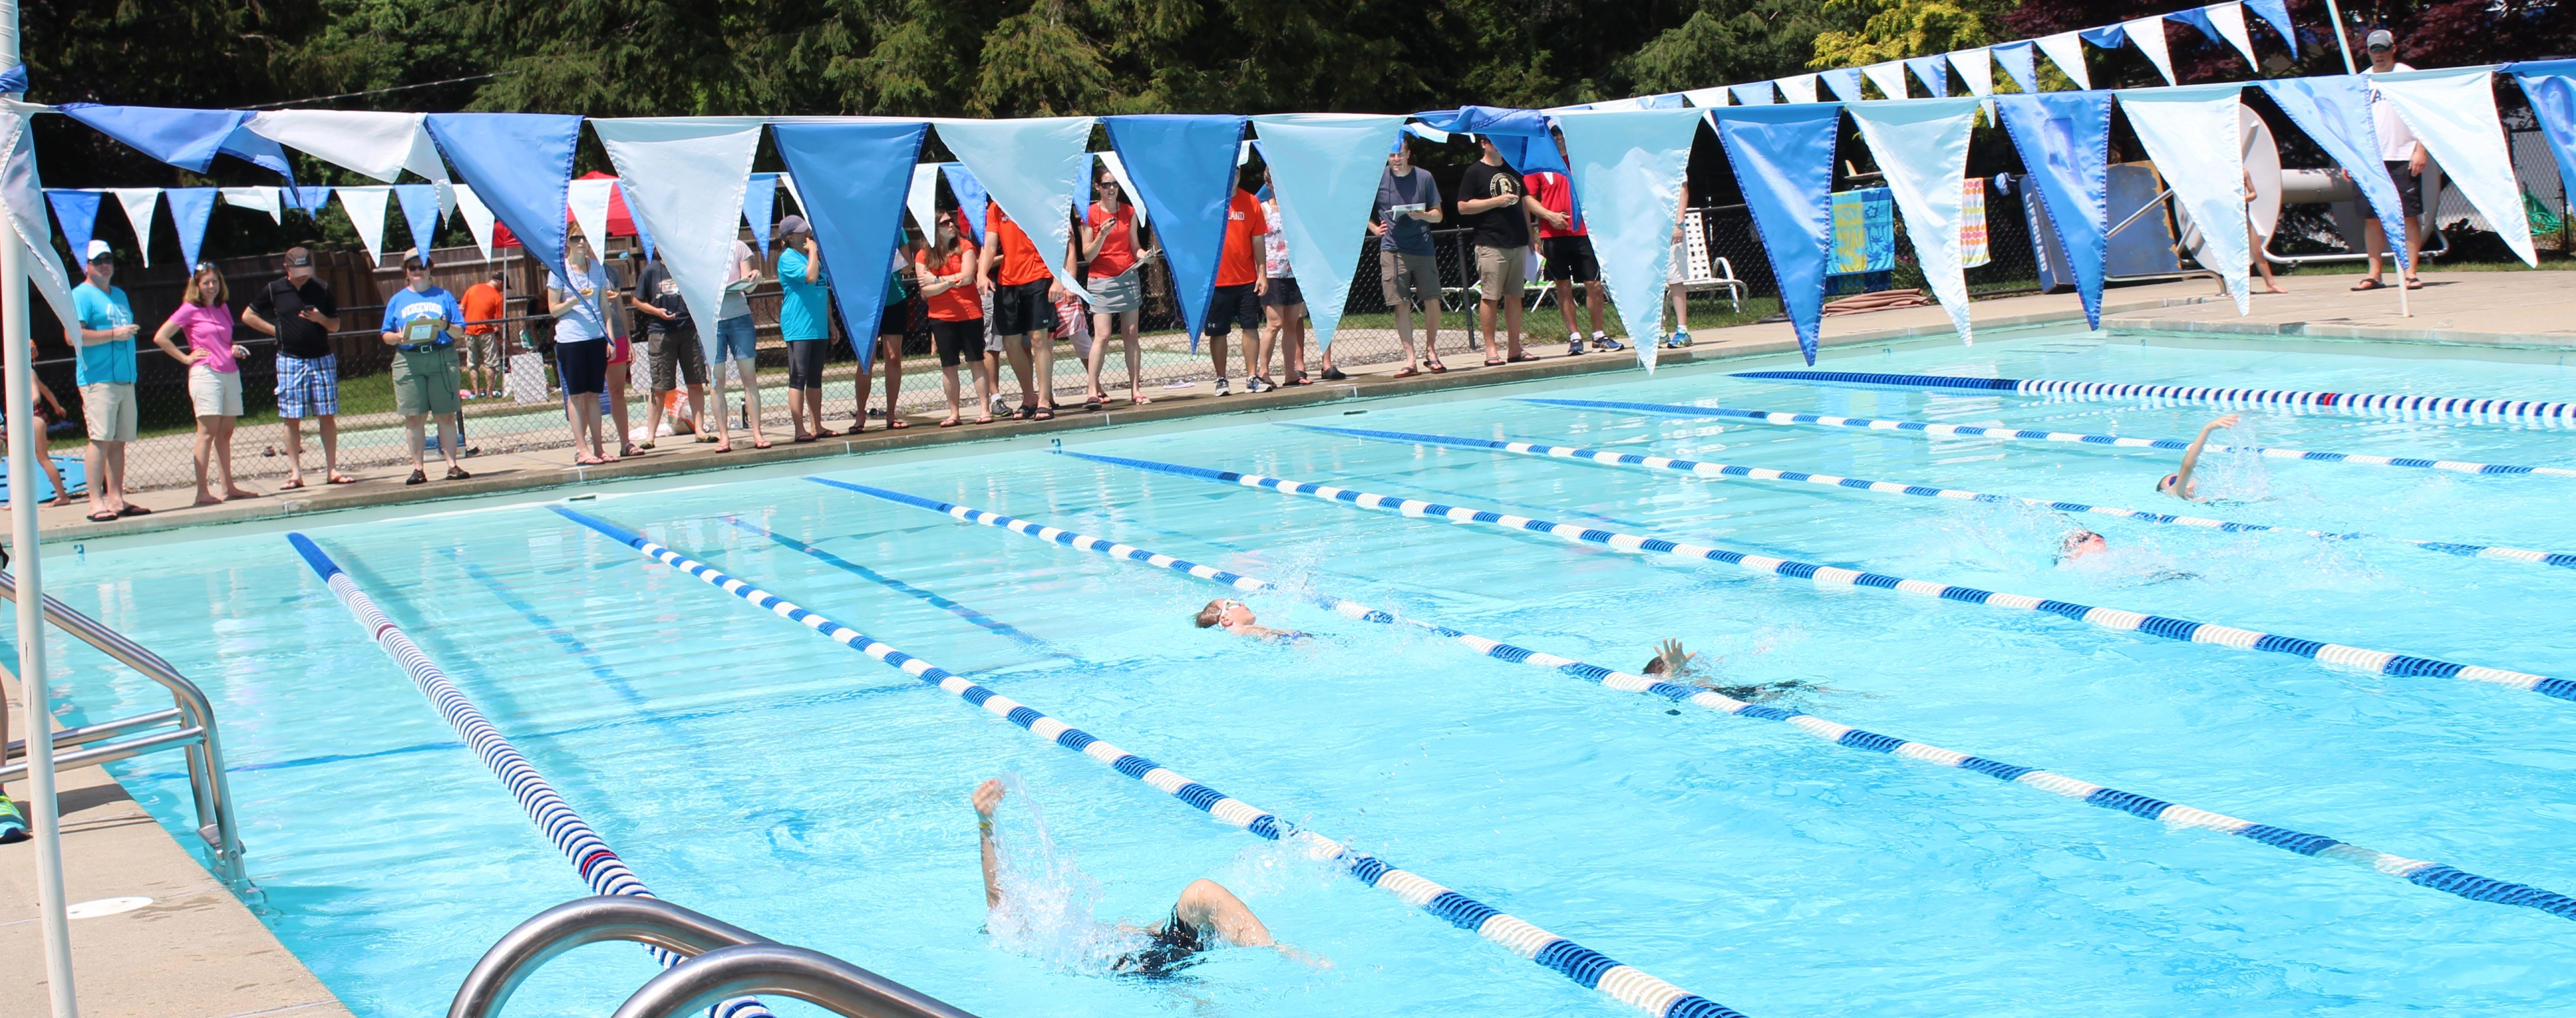 Adult Swimming Lessons | Learn to Swim | Red Cross